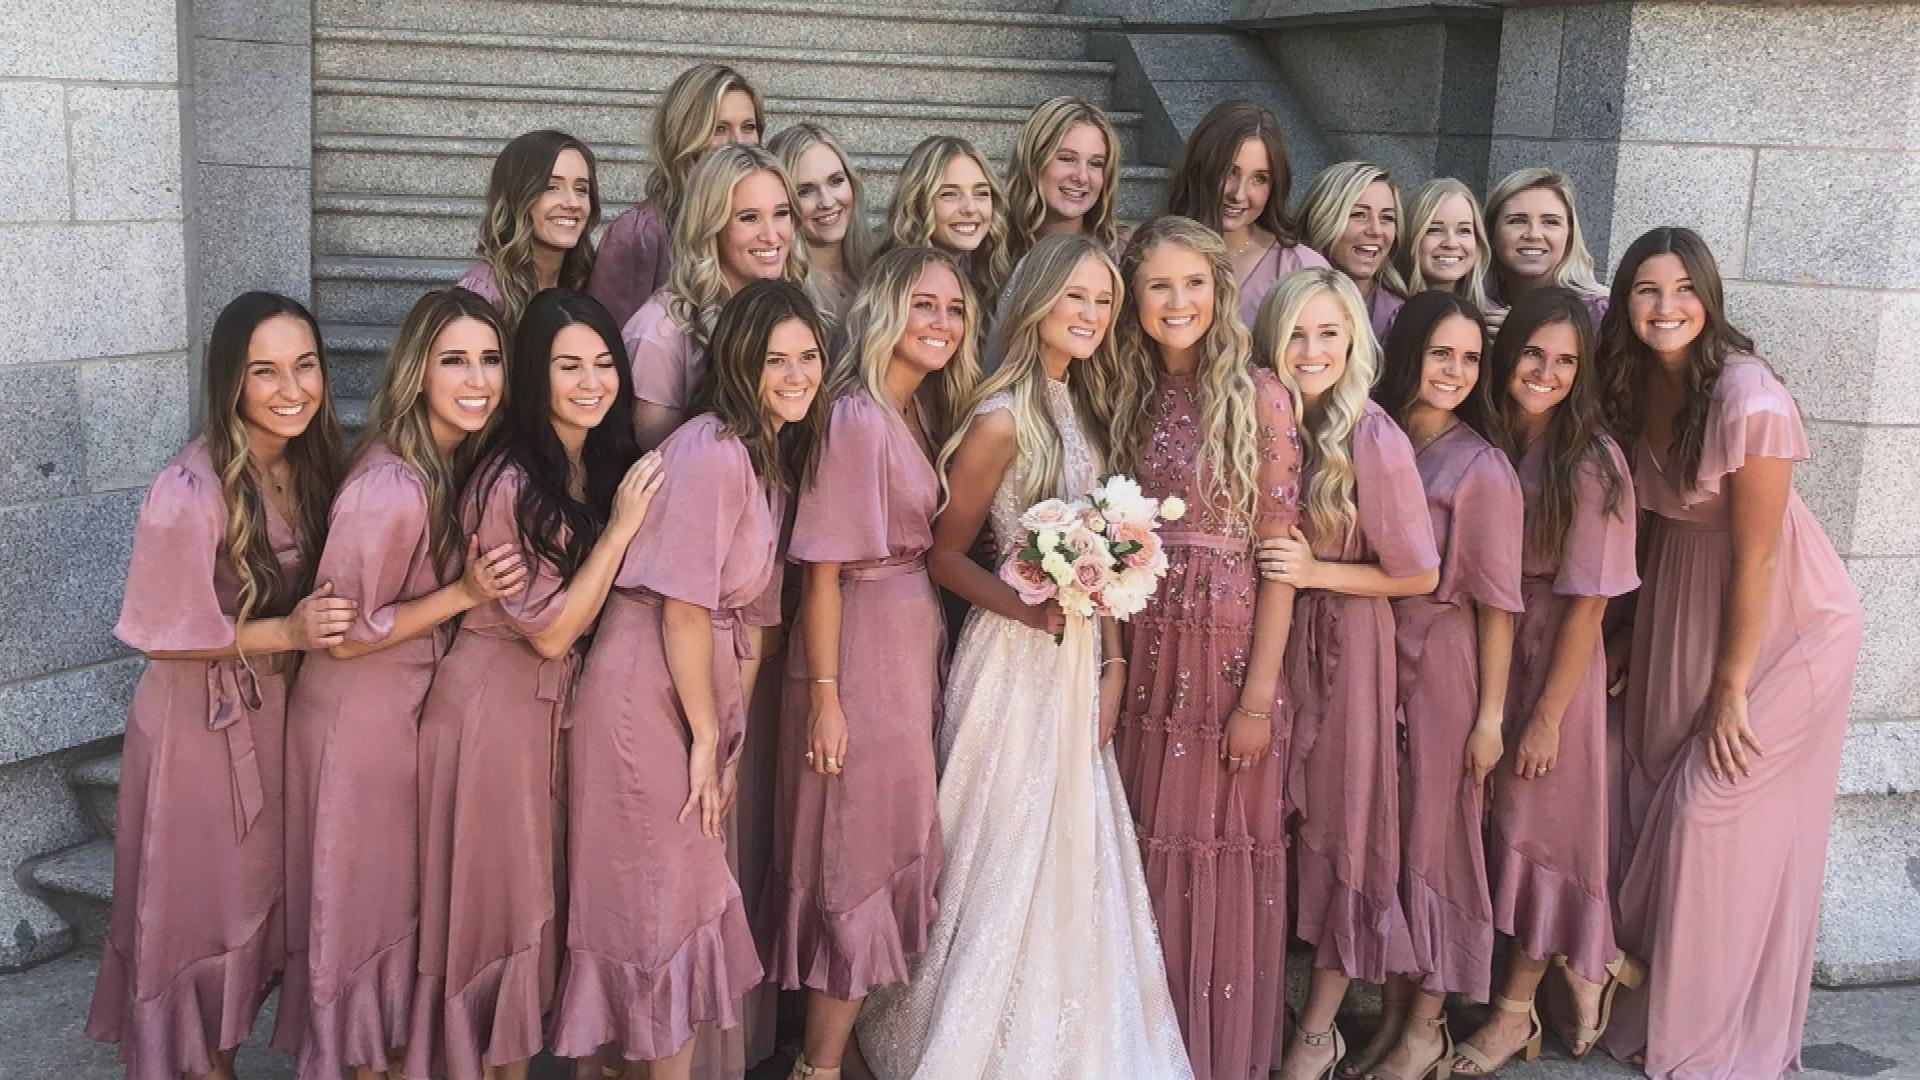 Why This Bride Has 20 Bridesmaids in Her Wedding